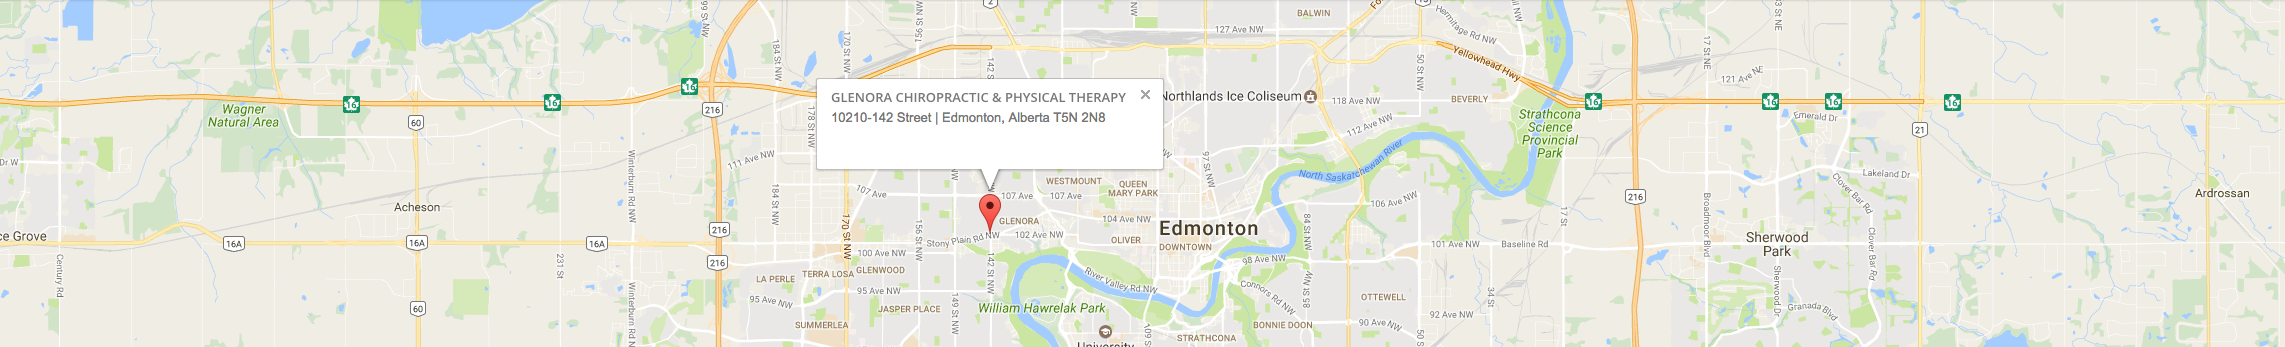 Glenora Chiropractic & Physical Therapy Clinic  Contact old glenora chiro physio map